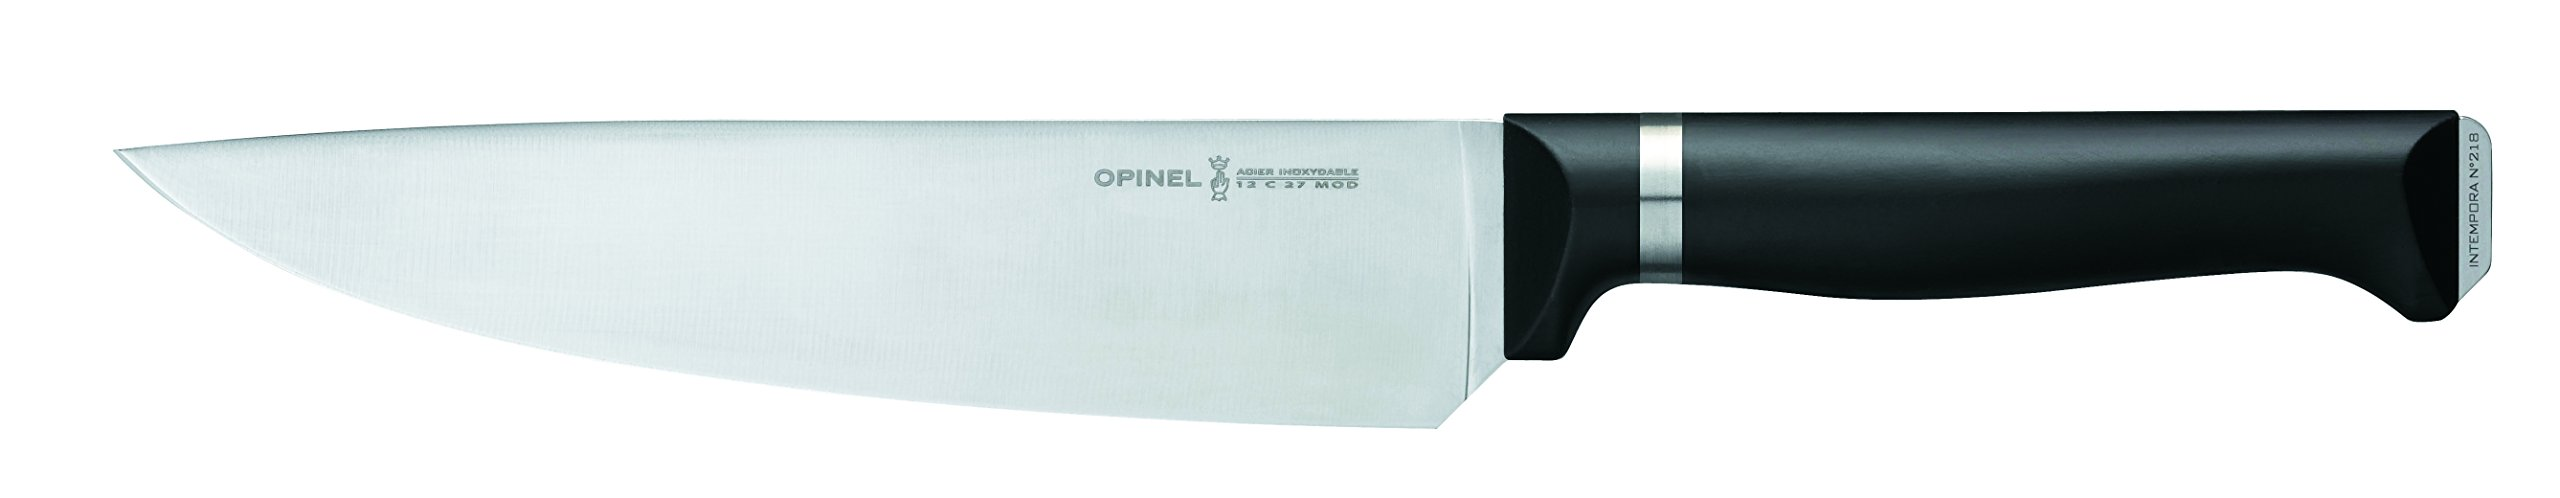 Opinel No 218 Intempora Stainless Steel Multi-Purpose Chef's Knife